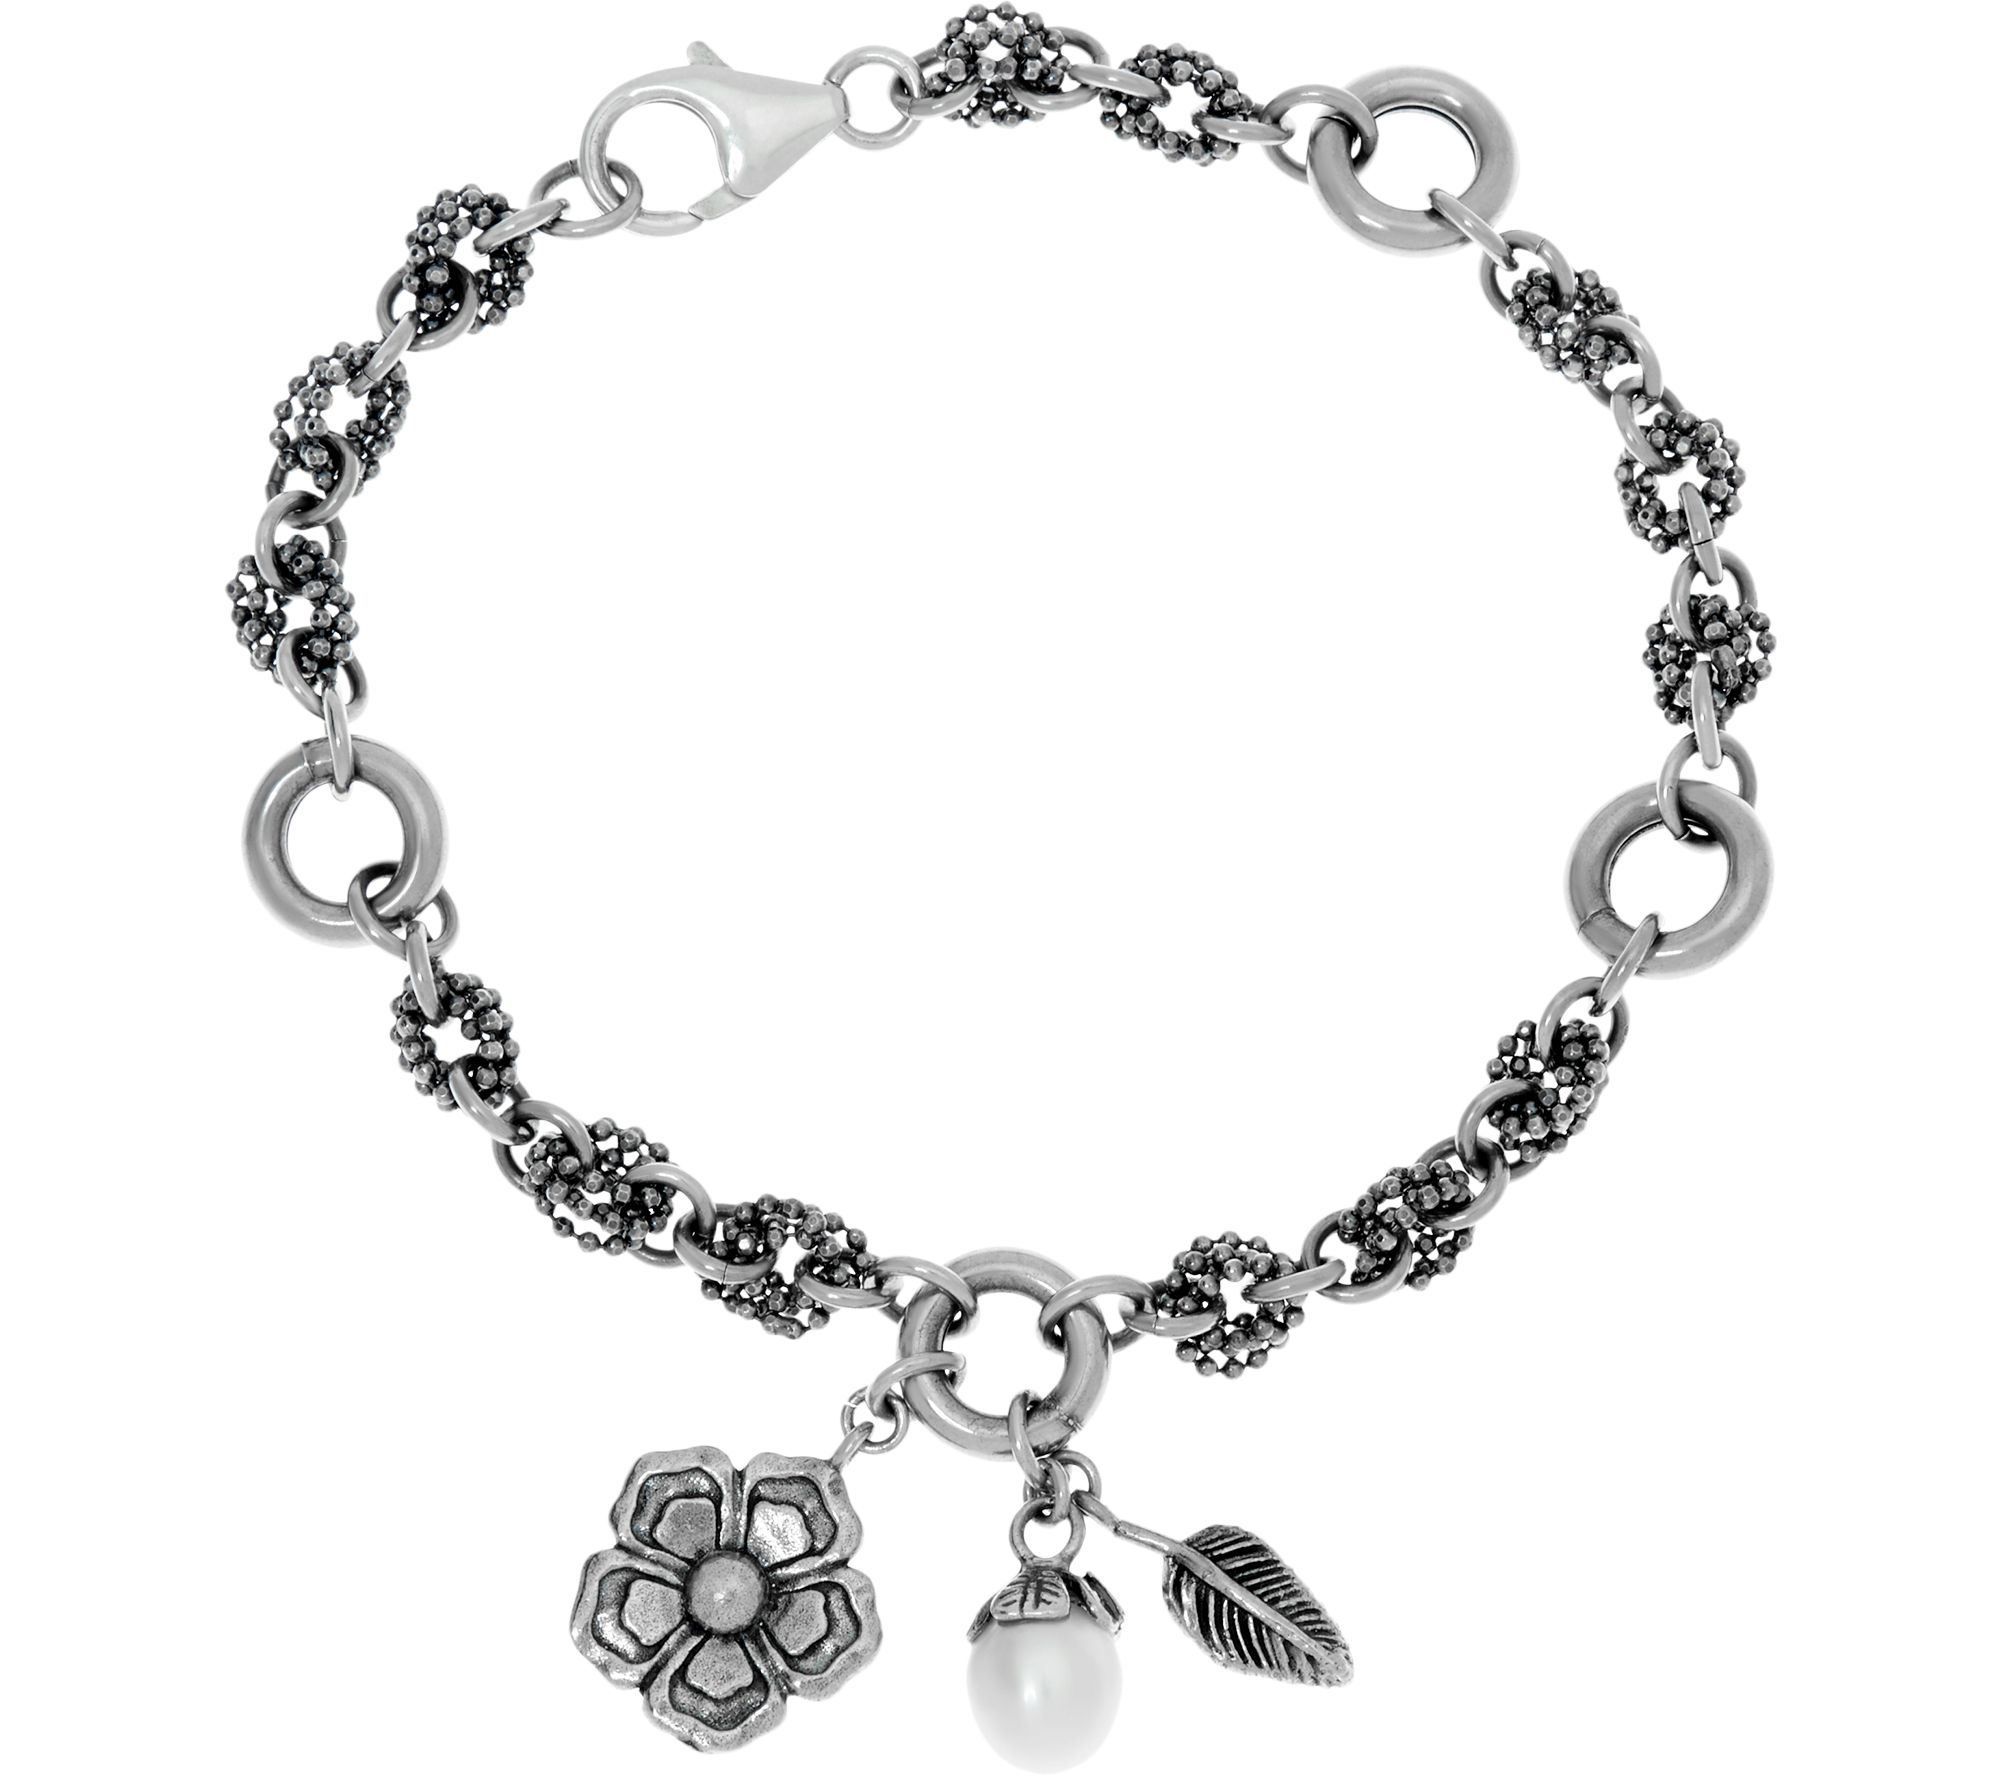 Sterling Silver Cultured Pearl Charm Bracelet By Or Paz  J346193